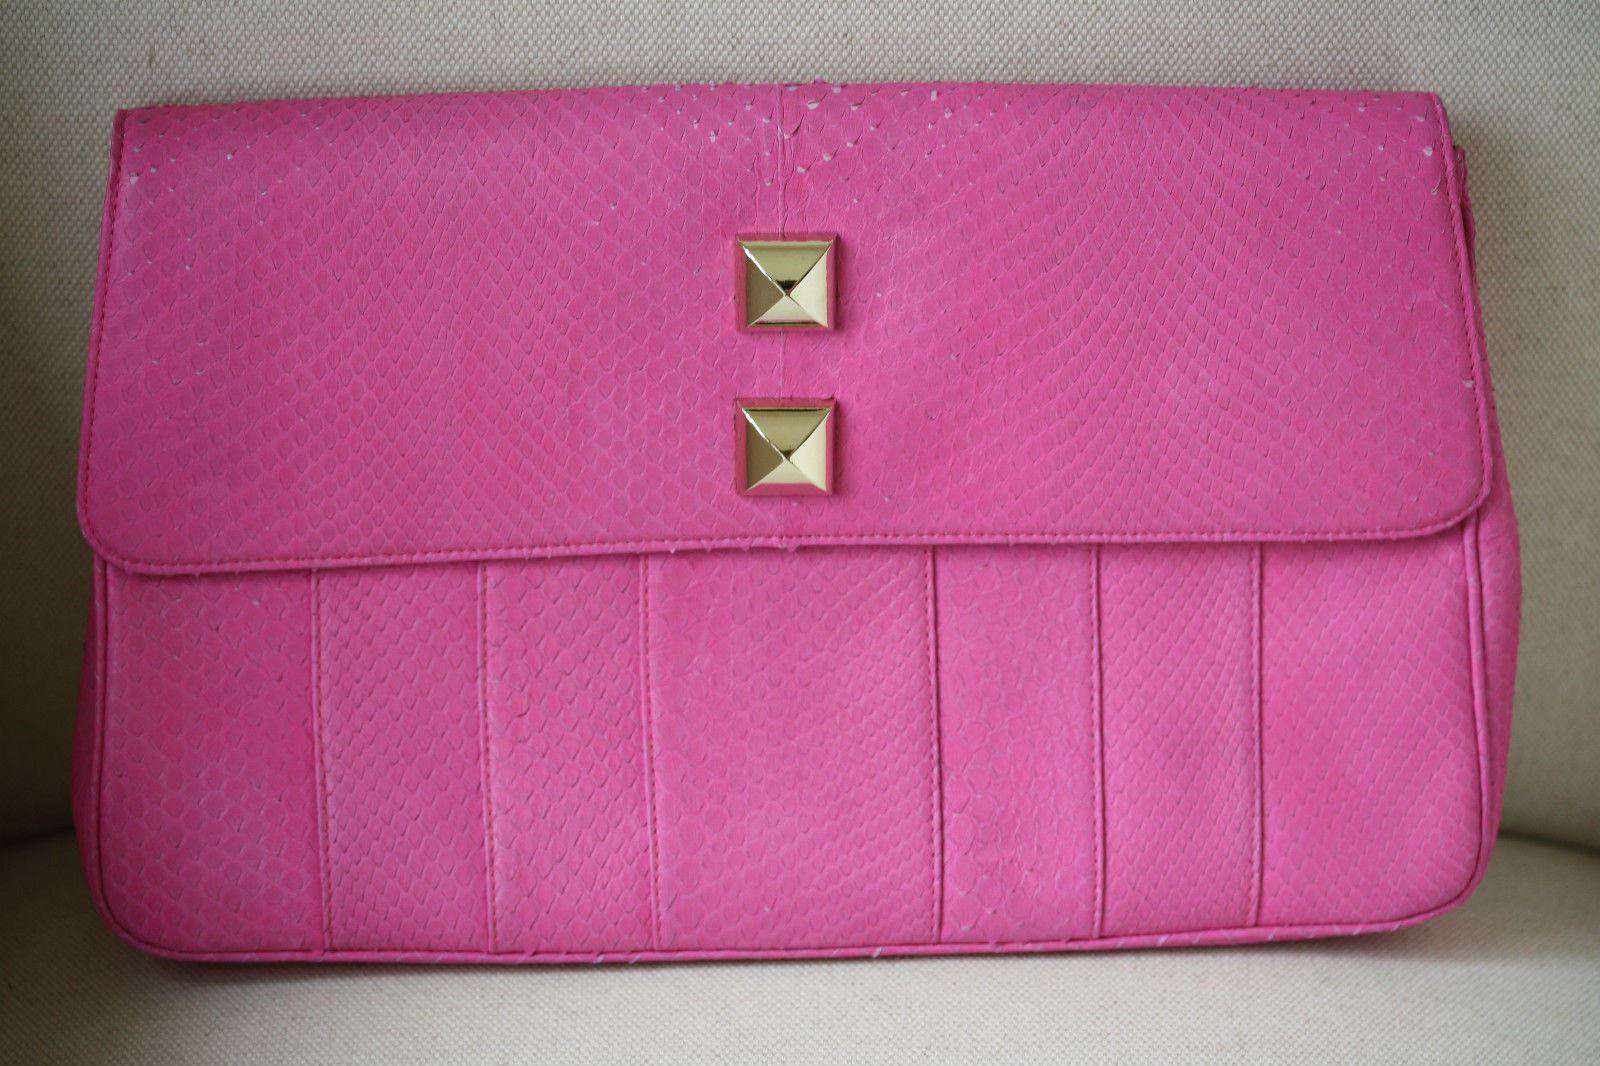 STARK AT HARRODS PINK PYTHON STUDDED OVERSIZED CLUTCH BAG